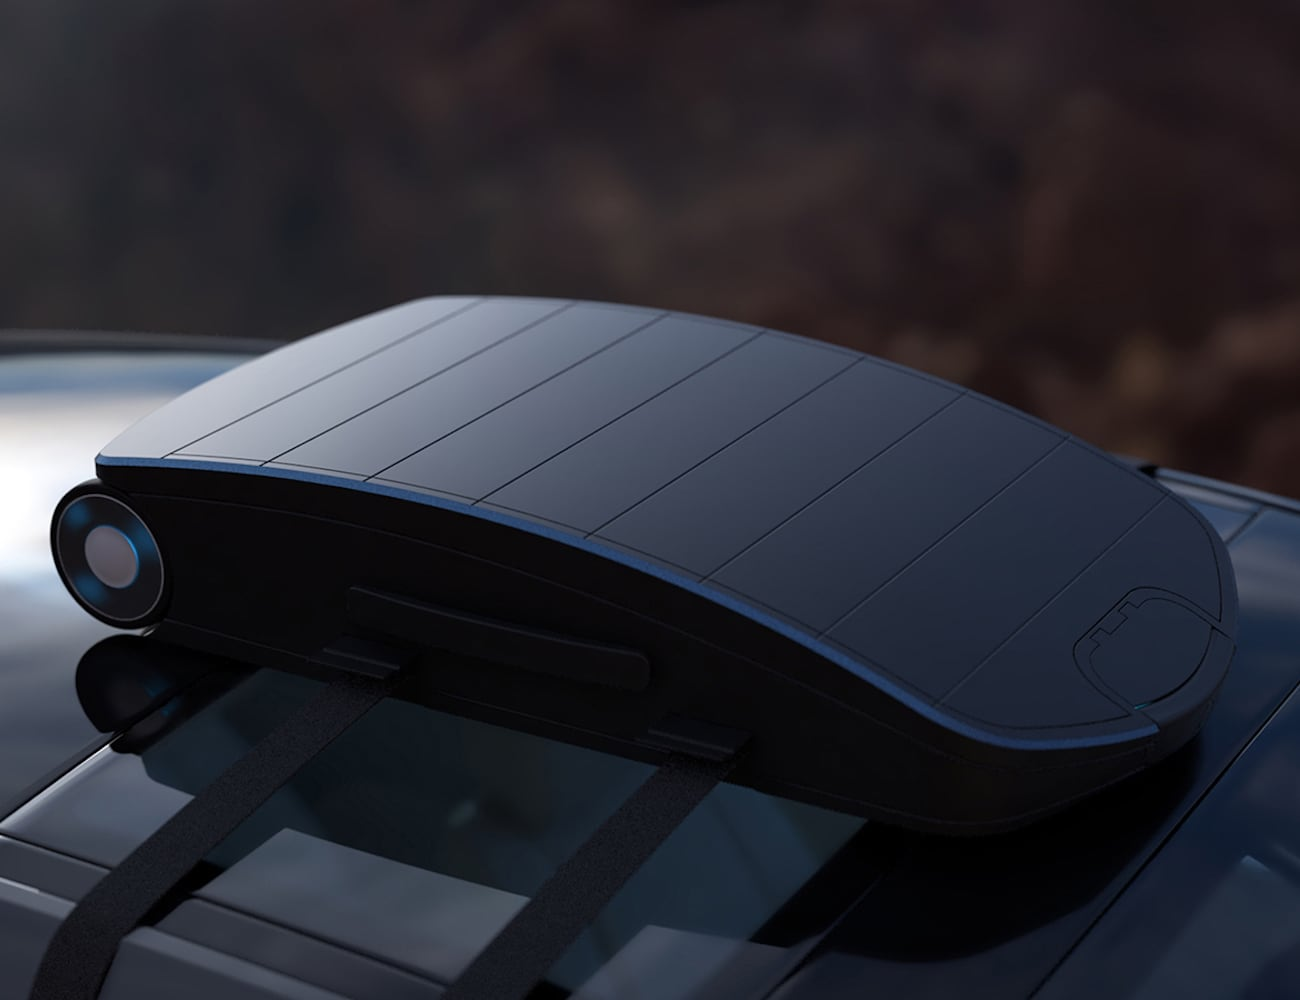 SU-R BOX Luggage Roof Box Hybrid gives you more room on road trips